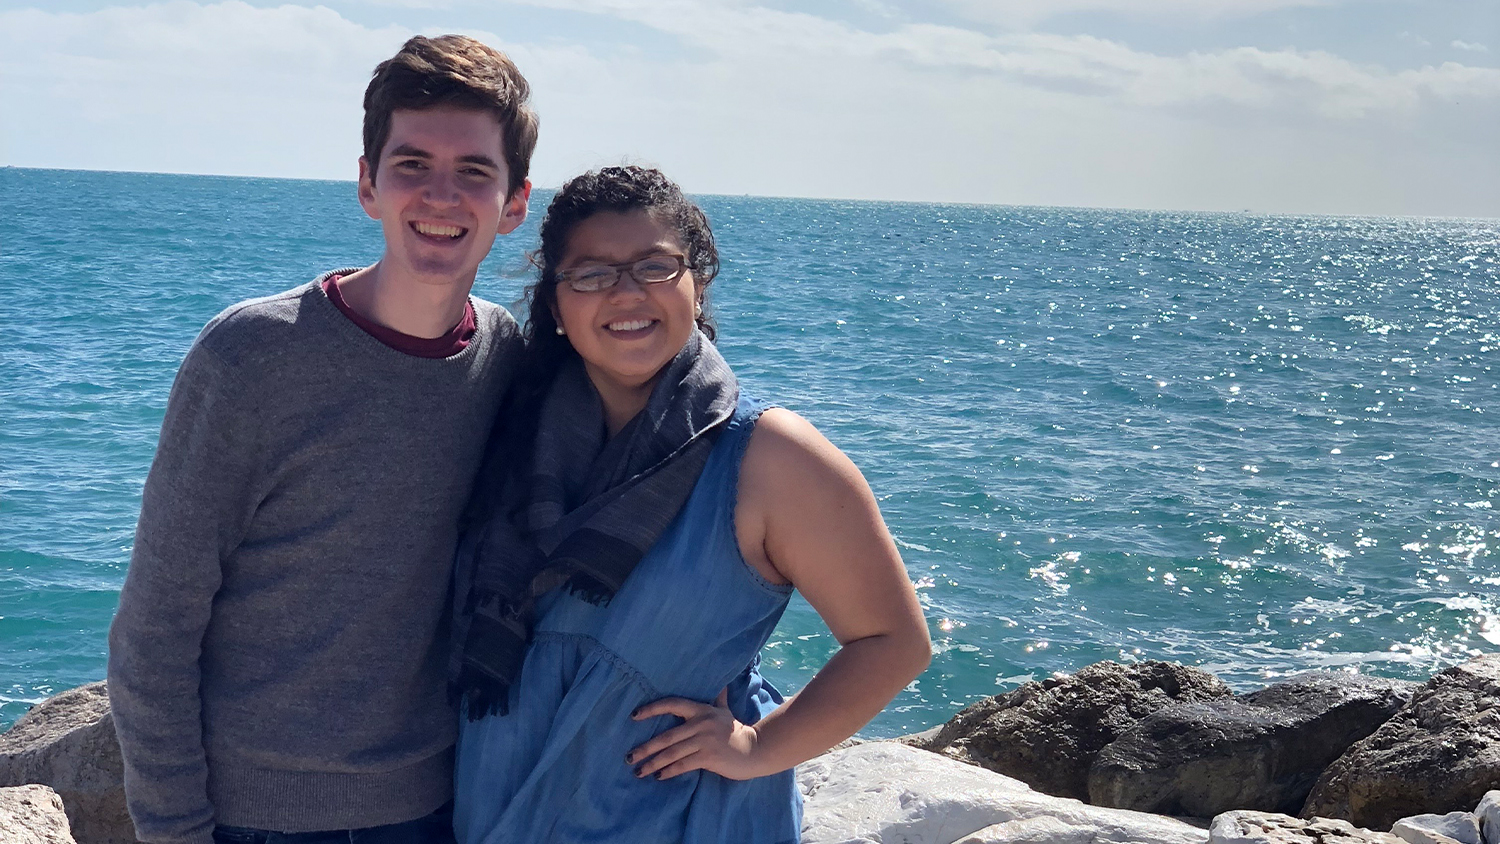 Mitchell Moravec and Jackie Gonzalez by the ocean